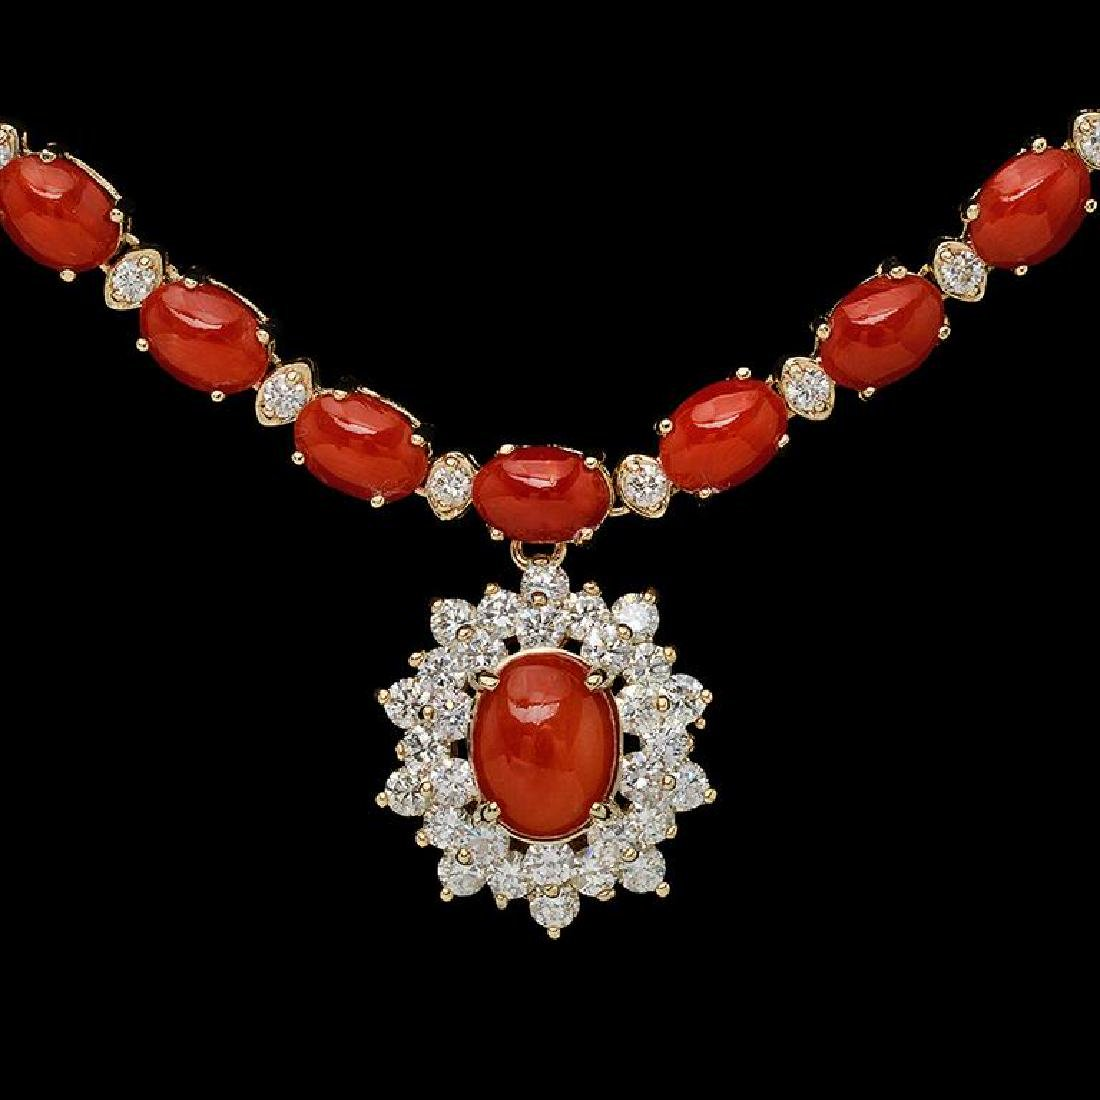 14K Gold 30.93ct Coral & 2.85ct Diamond Necklace - 2